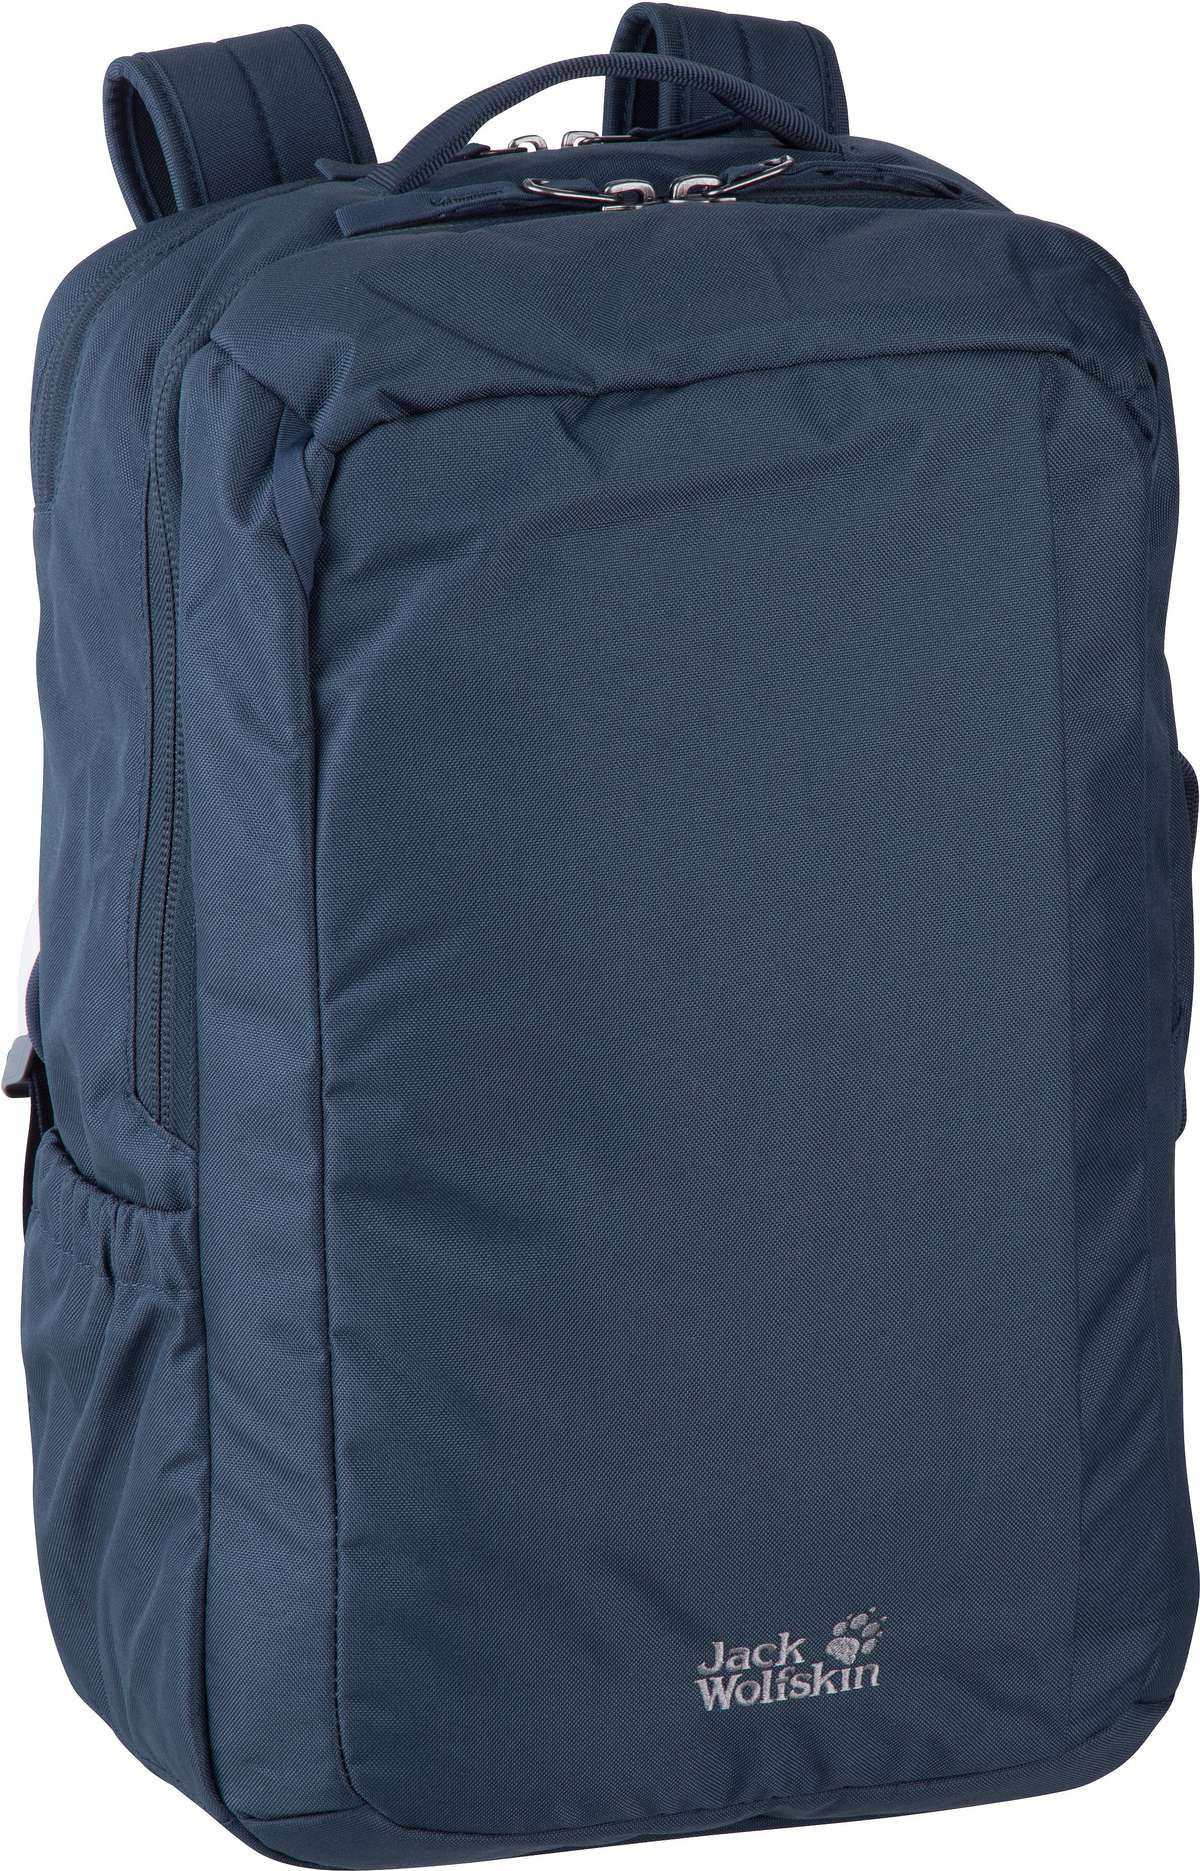 Rucksack / Daypack Brooklyn 26 Night Blue (26 Liter)